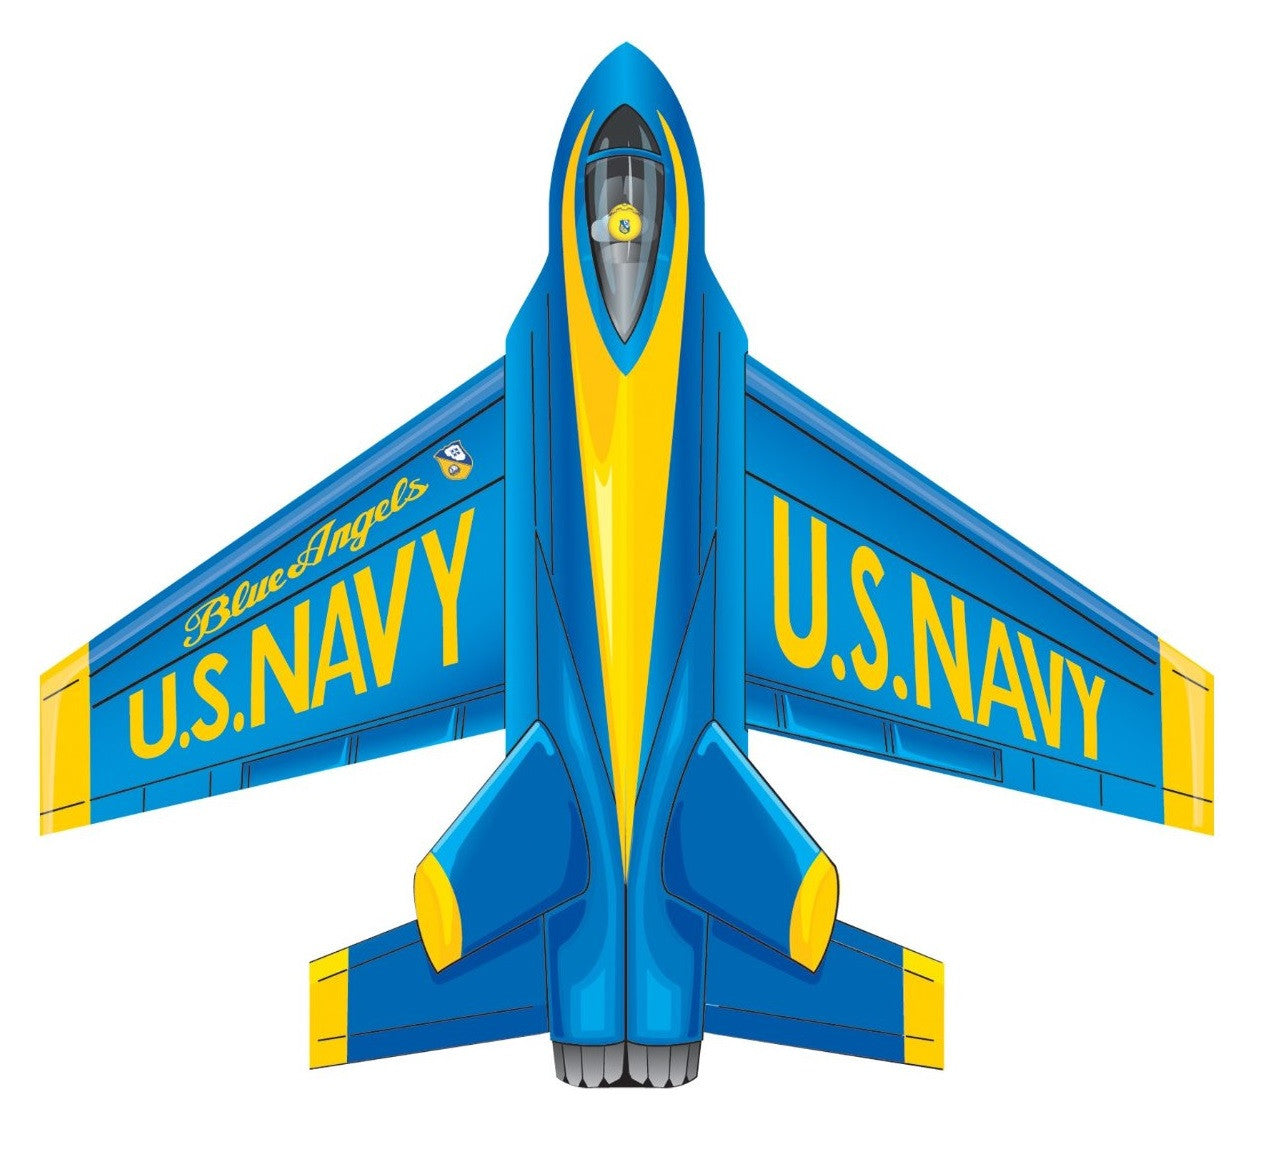 4.7 Inch Wind 'n Sun MicroJet Blue Angels Kite w/Handle & Line - Off The Wall Toys and Gifts